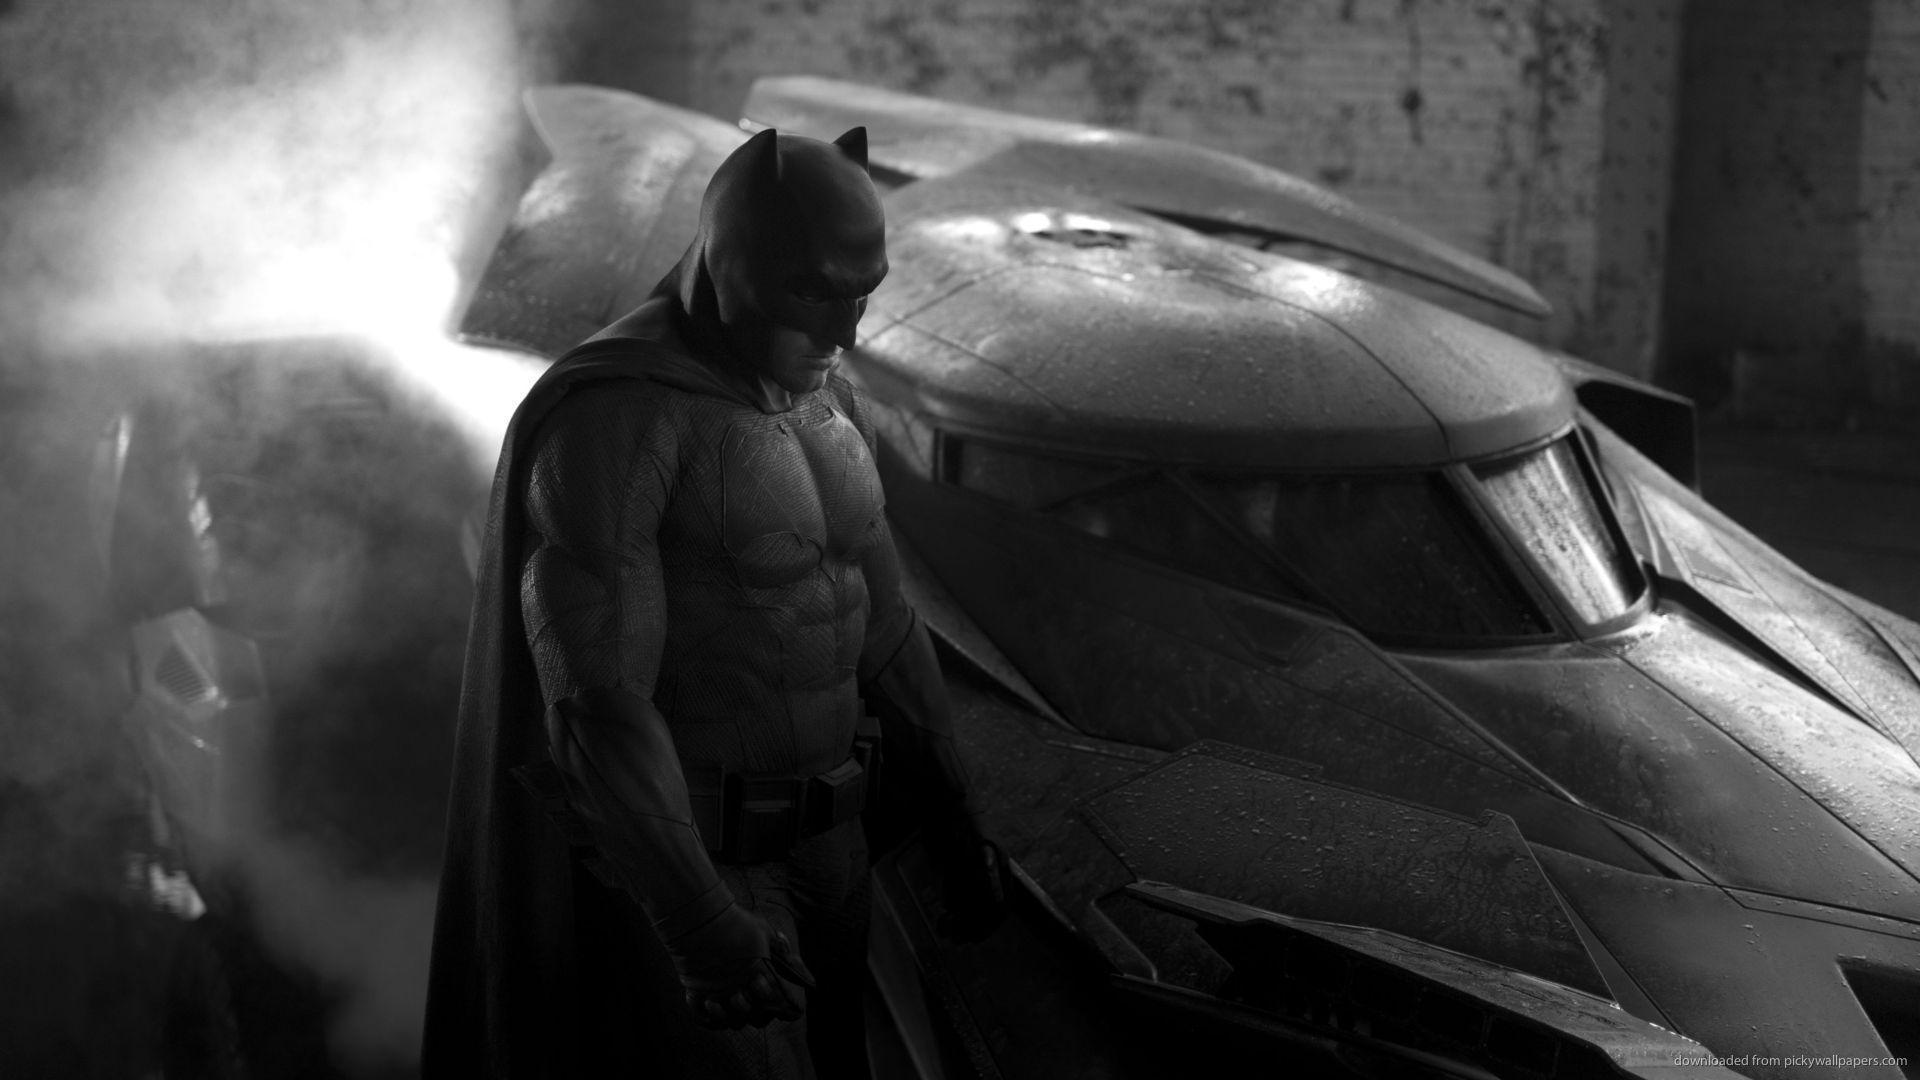 Download 1920x1080 Batman Ben Affleck With New Batmobile Wallpapers